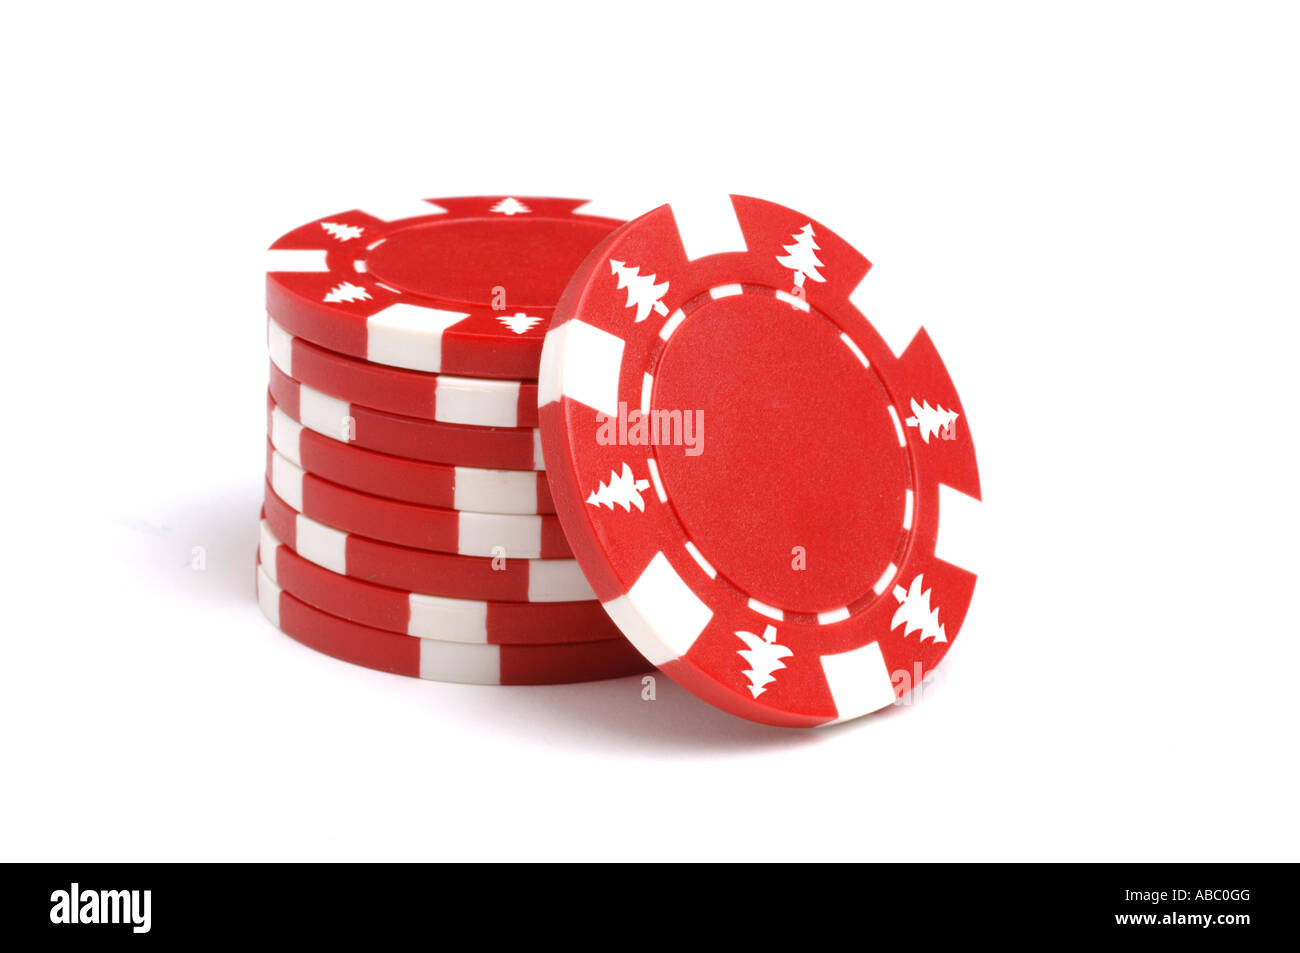 Red poker chips with Christmas tree markings - Stock Image